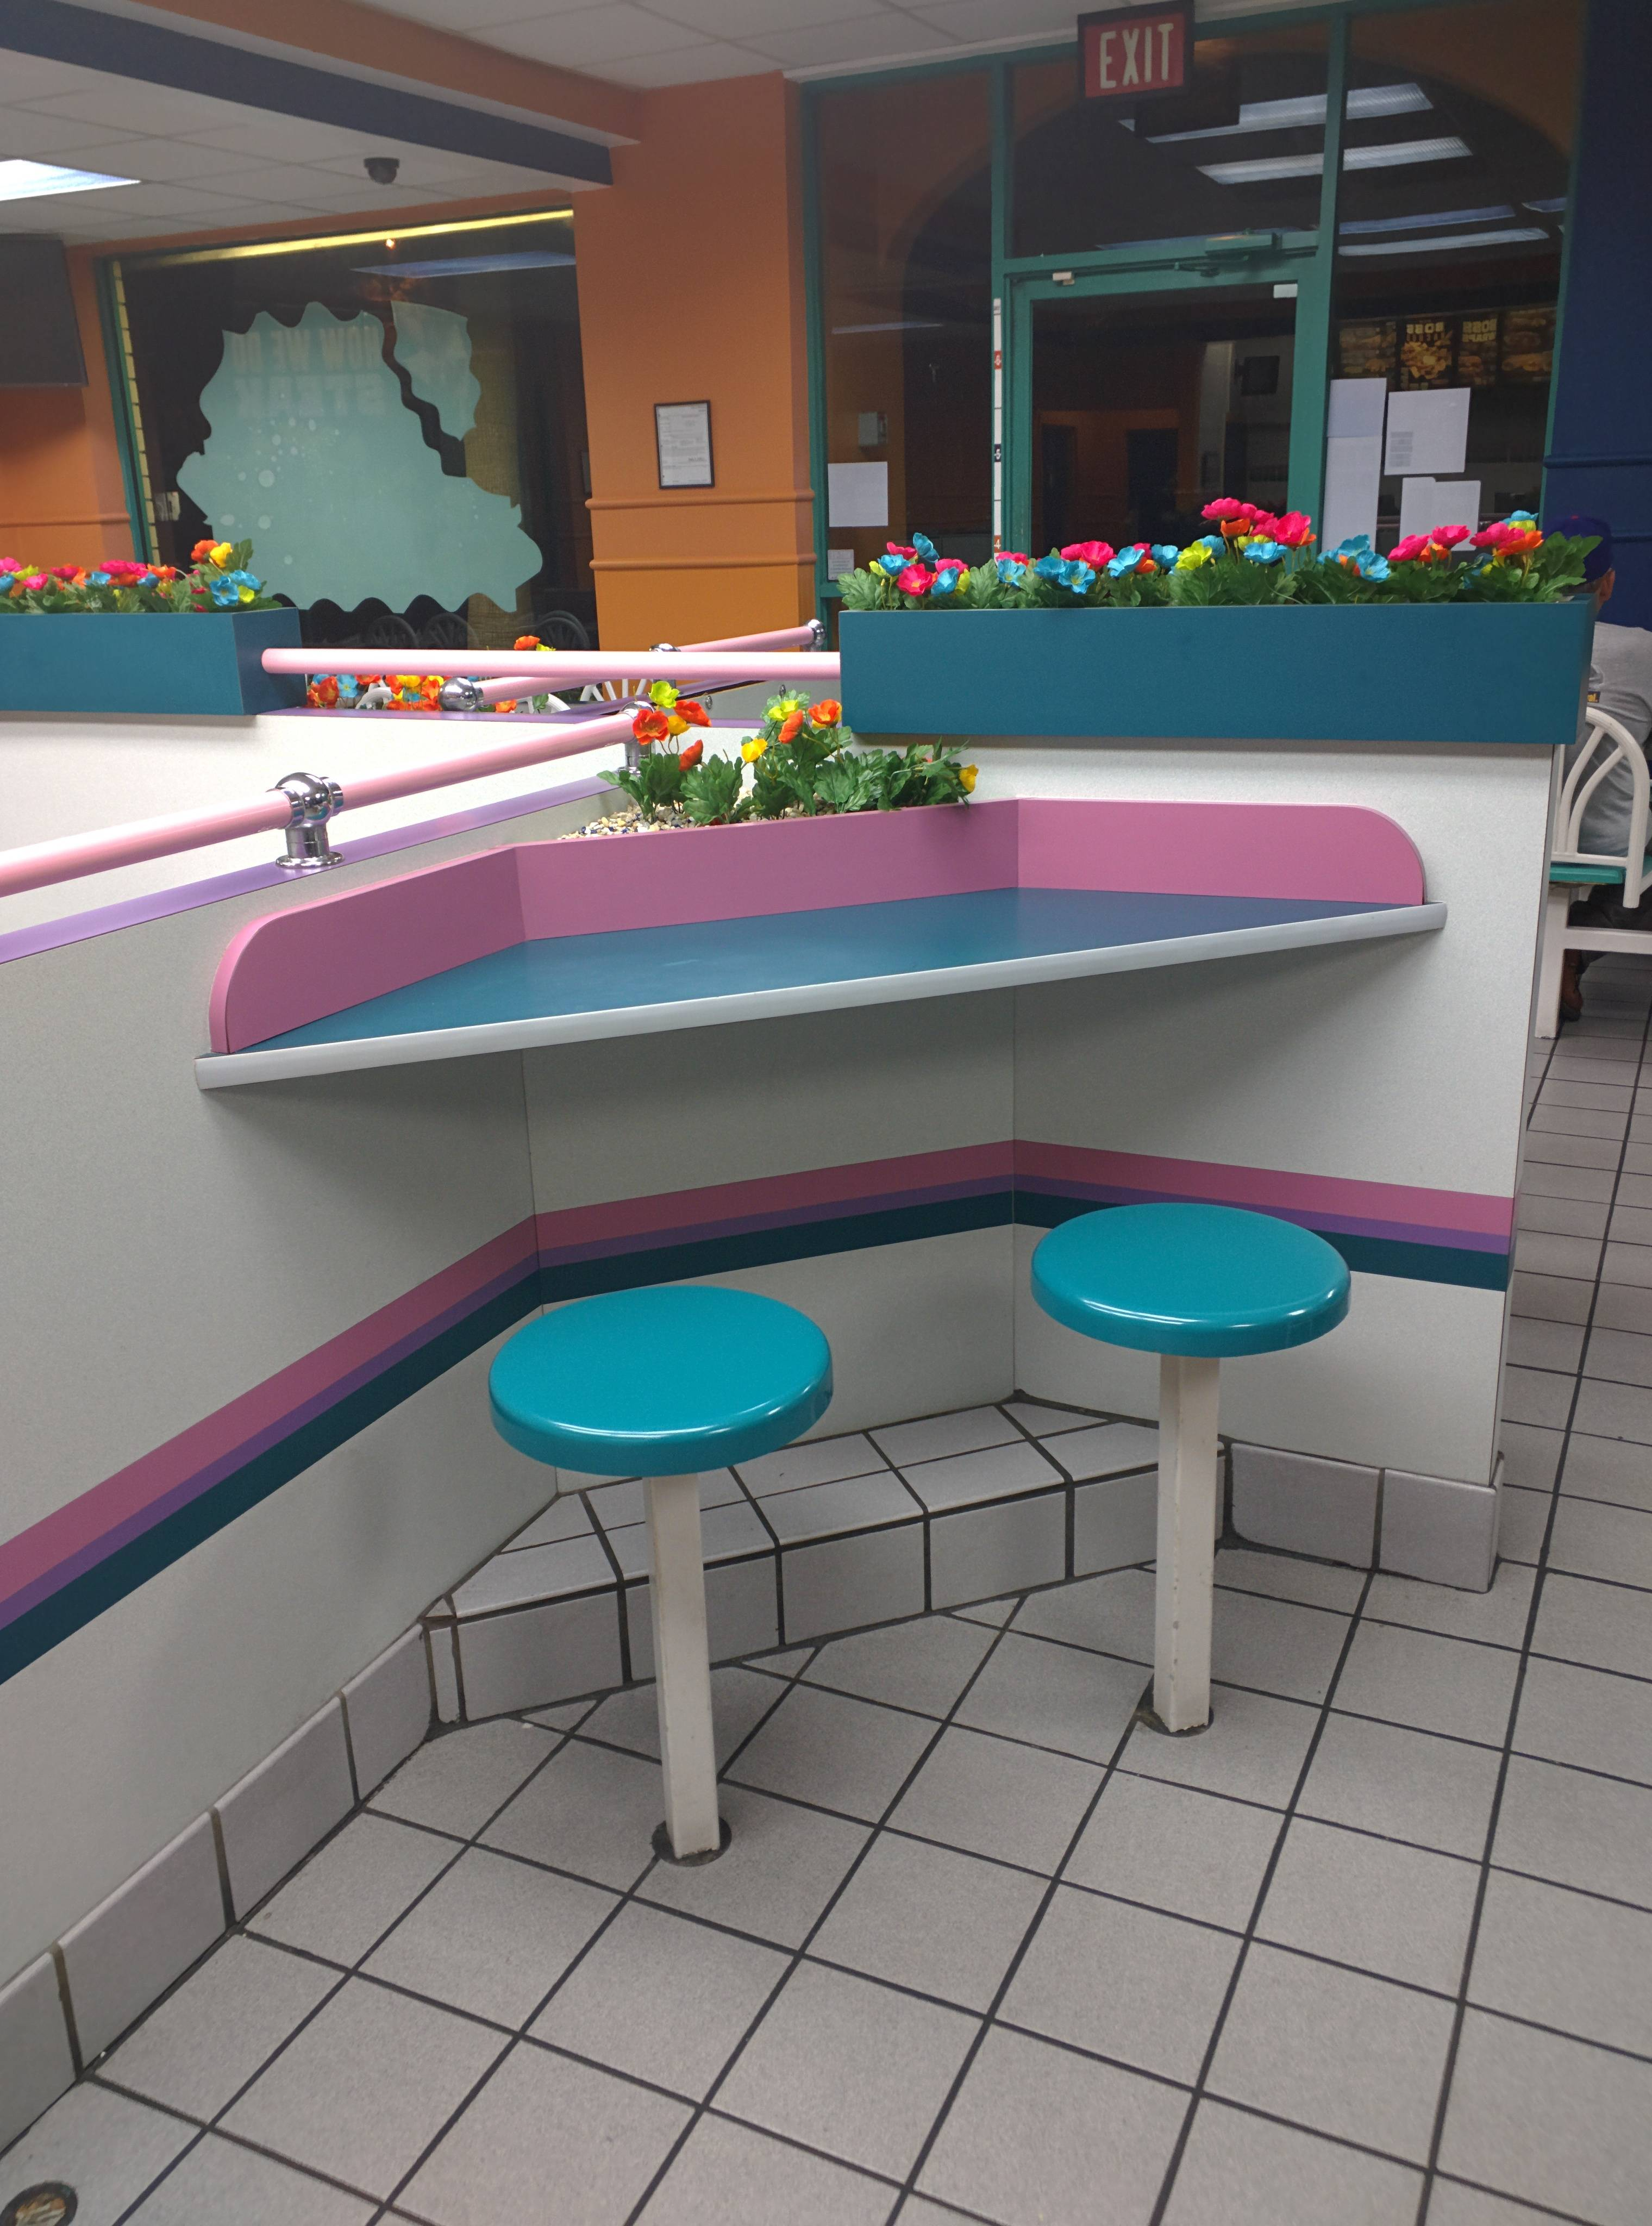 Seeing These Photos Of 90s Fast Food Restaurants Will